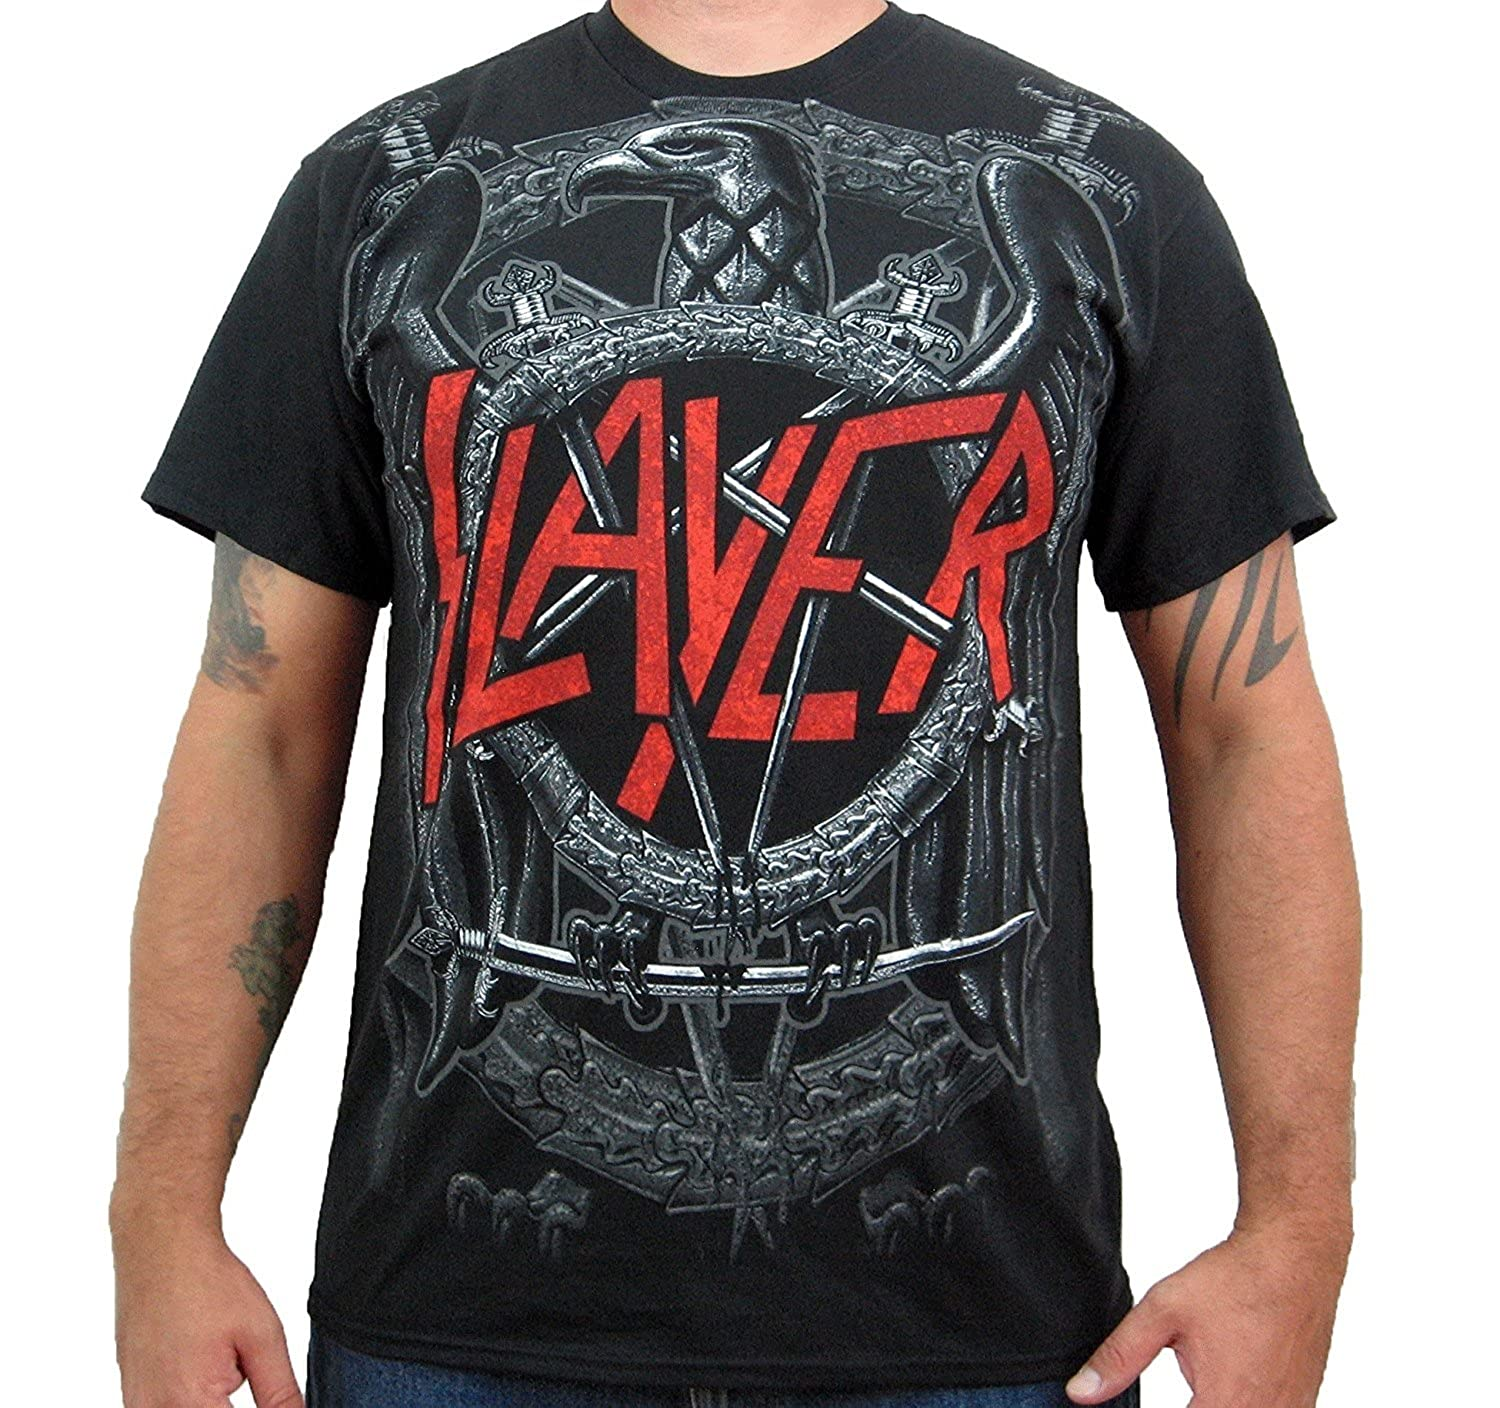 78b6bccf8825 Amazon.com: Slayer Jumbo Black Eagle Pentagram Black T-Shirt (Small):  Clothing